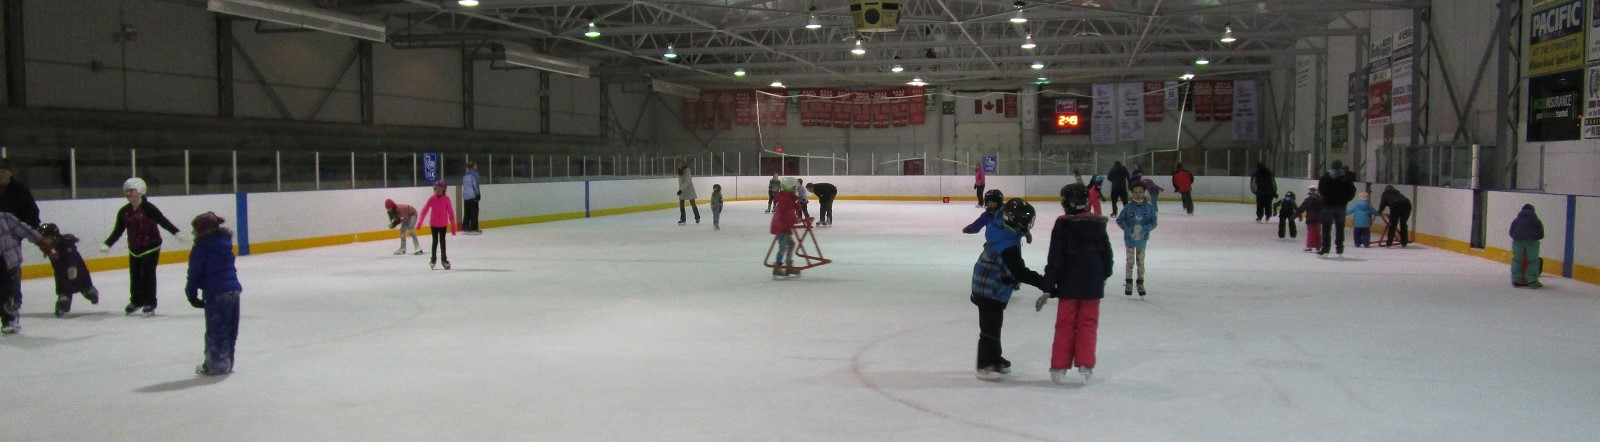 Photo of public skating at Wiarton arena